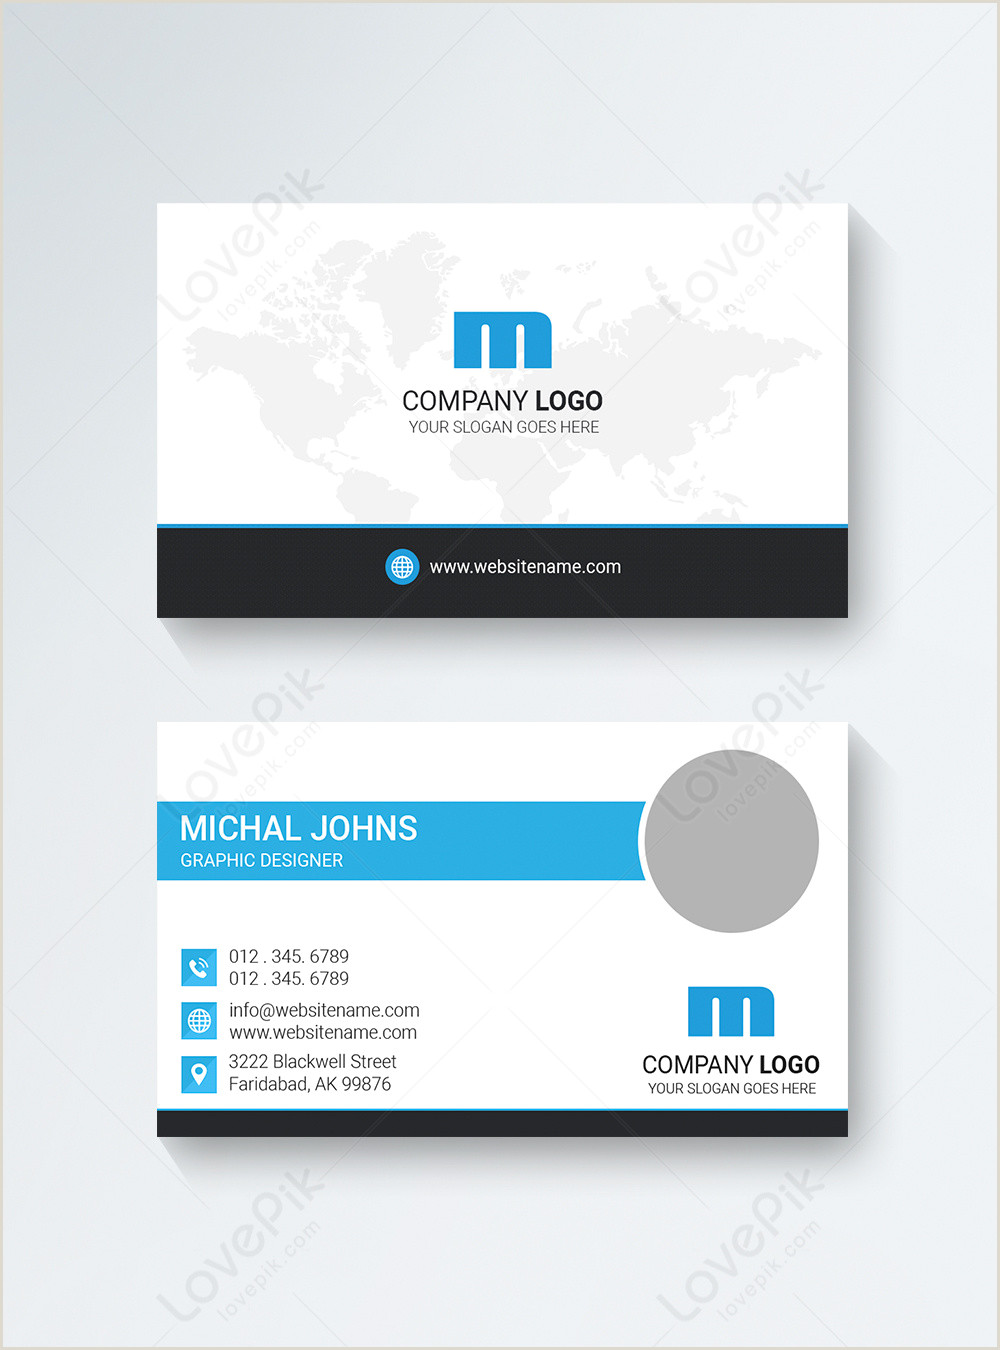 White Business Card Template White And Blue Pany Business Card Template Image Picture